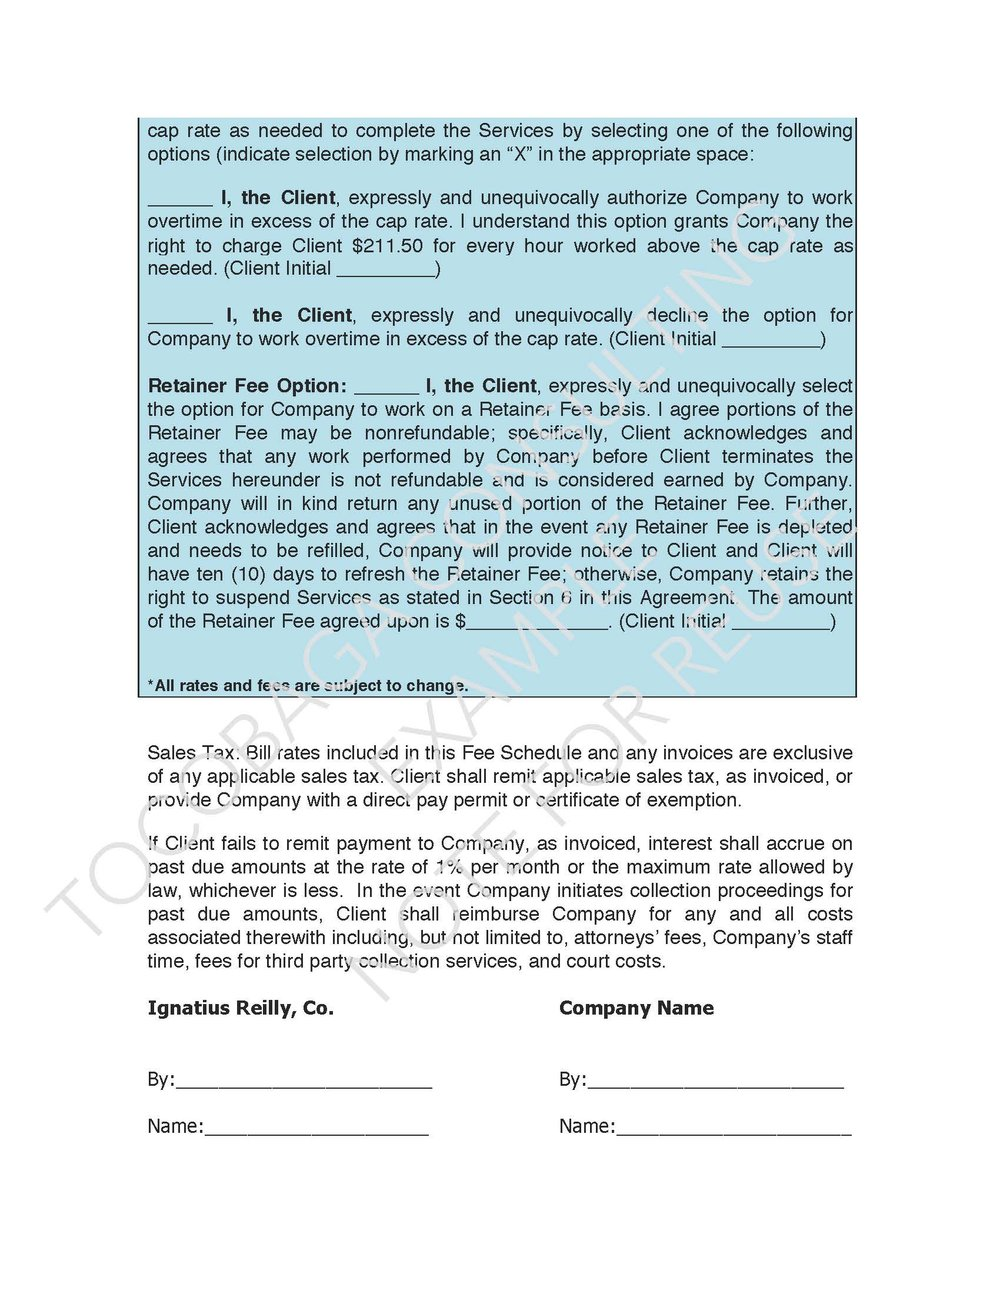 Company Services Agreement EXAMPLE_Page_13.jpg